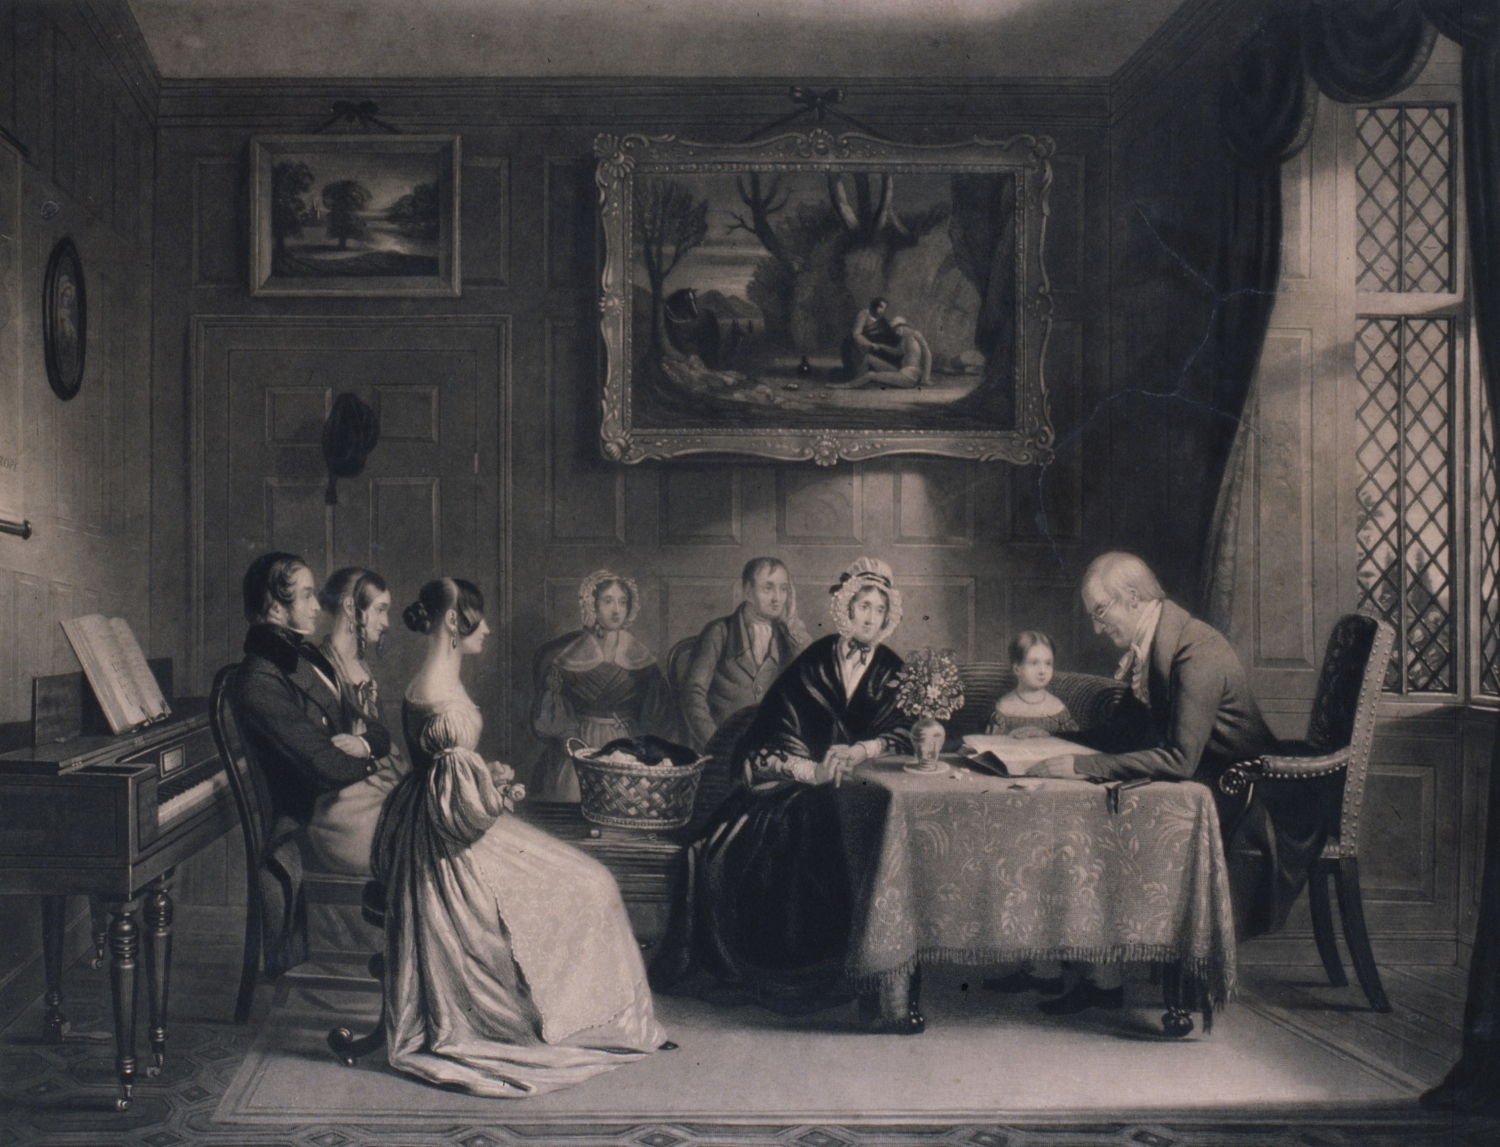 A group of people are seated around a table with a man leading prayers and reading from what appears to be a bible. The room is well furnished with elaborate paintings, furniture and a large window on the left.